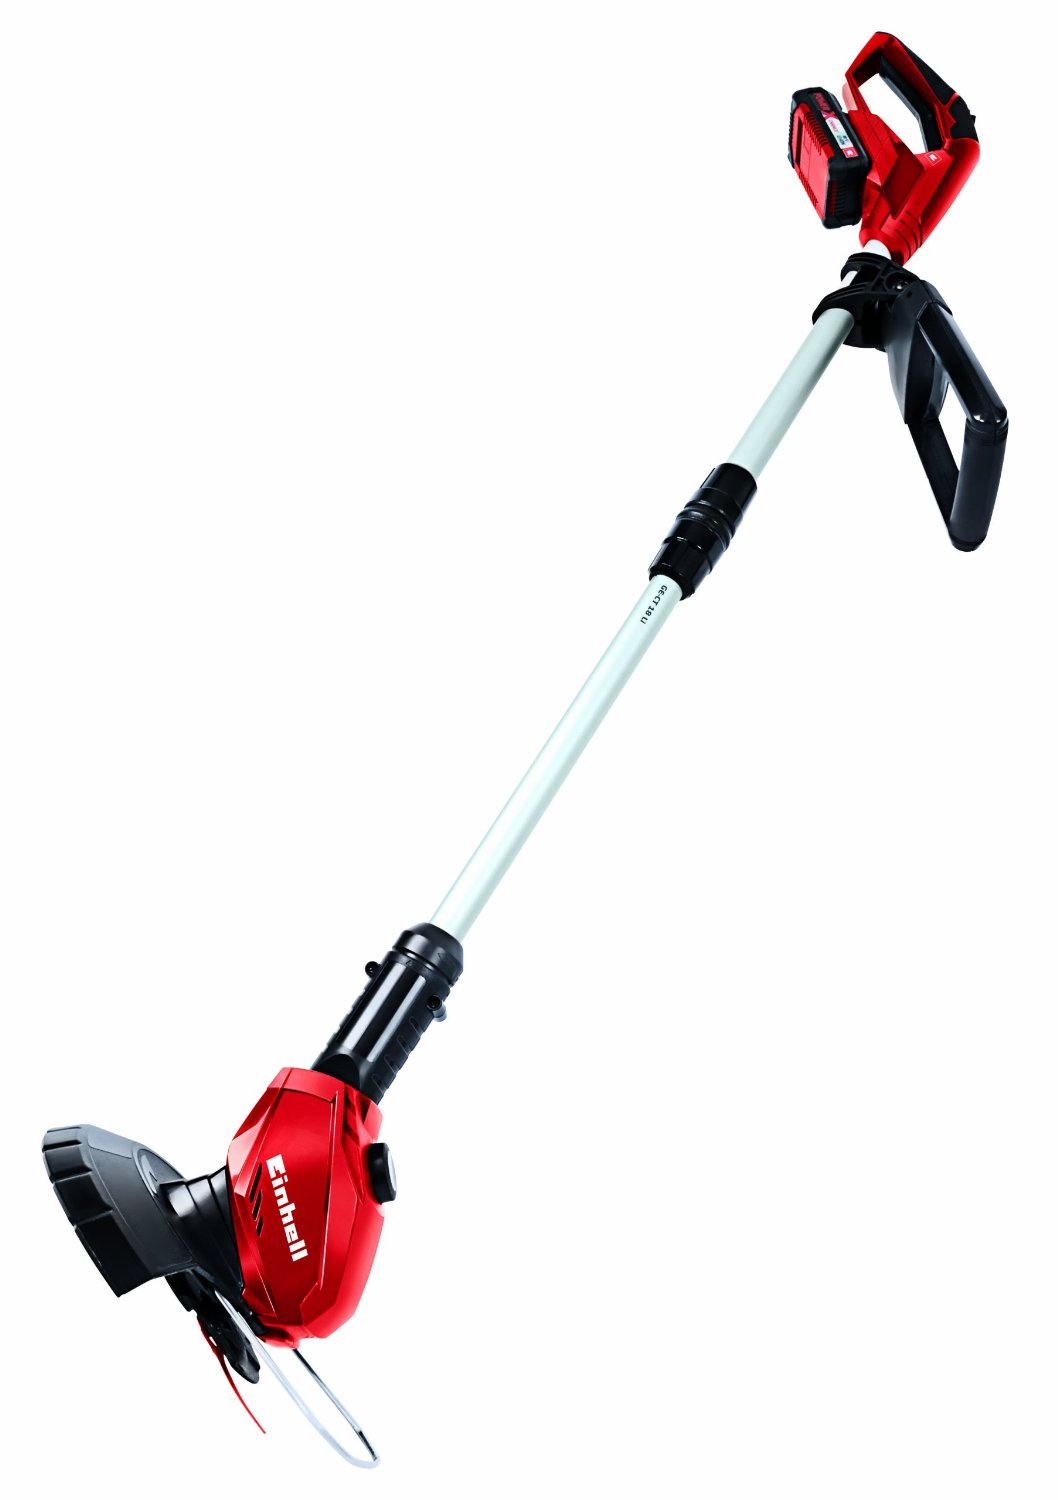 Einhell GE-CT 18LI Power X-Change Cordless Grass-Trimmer (Tool Only)